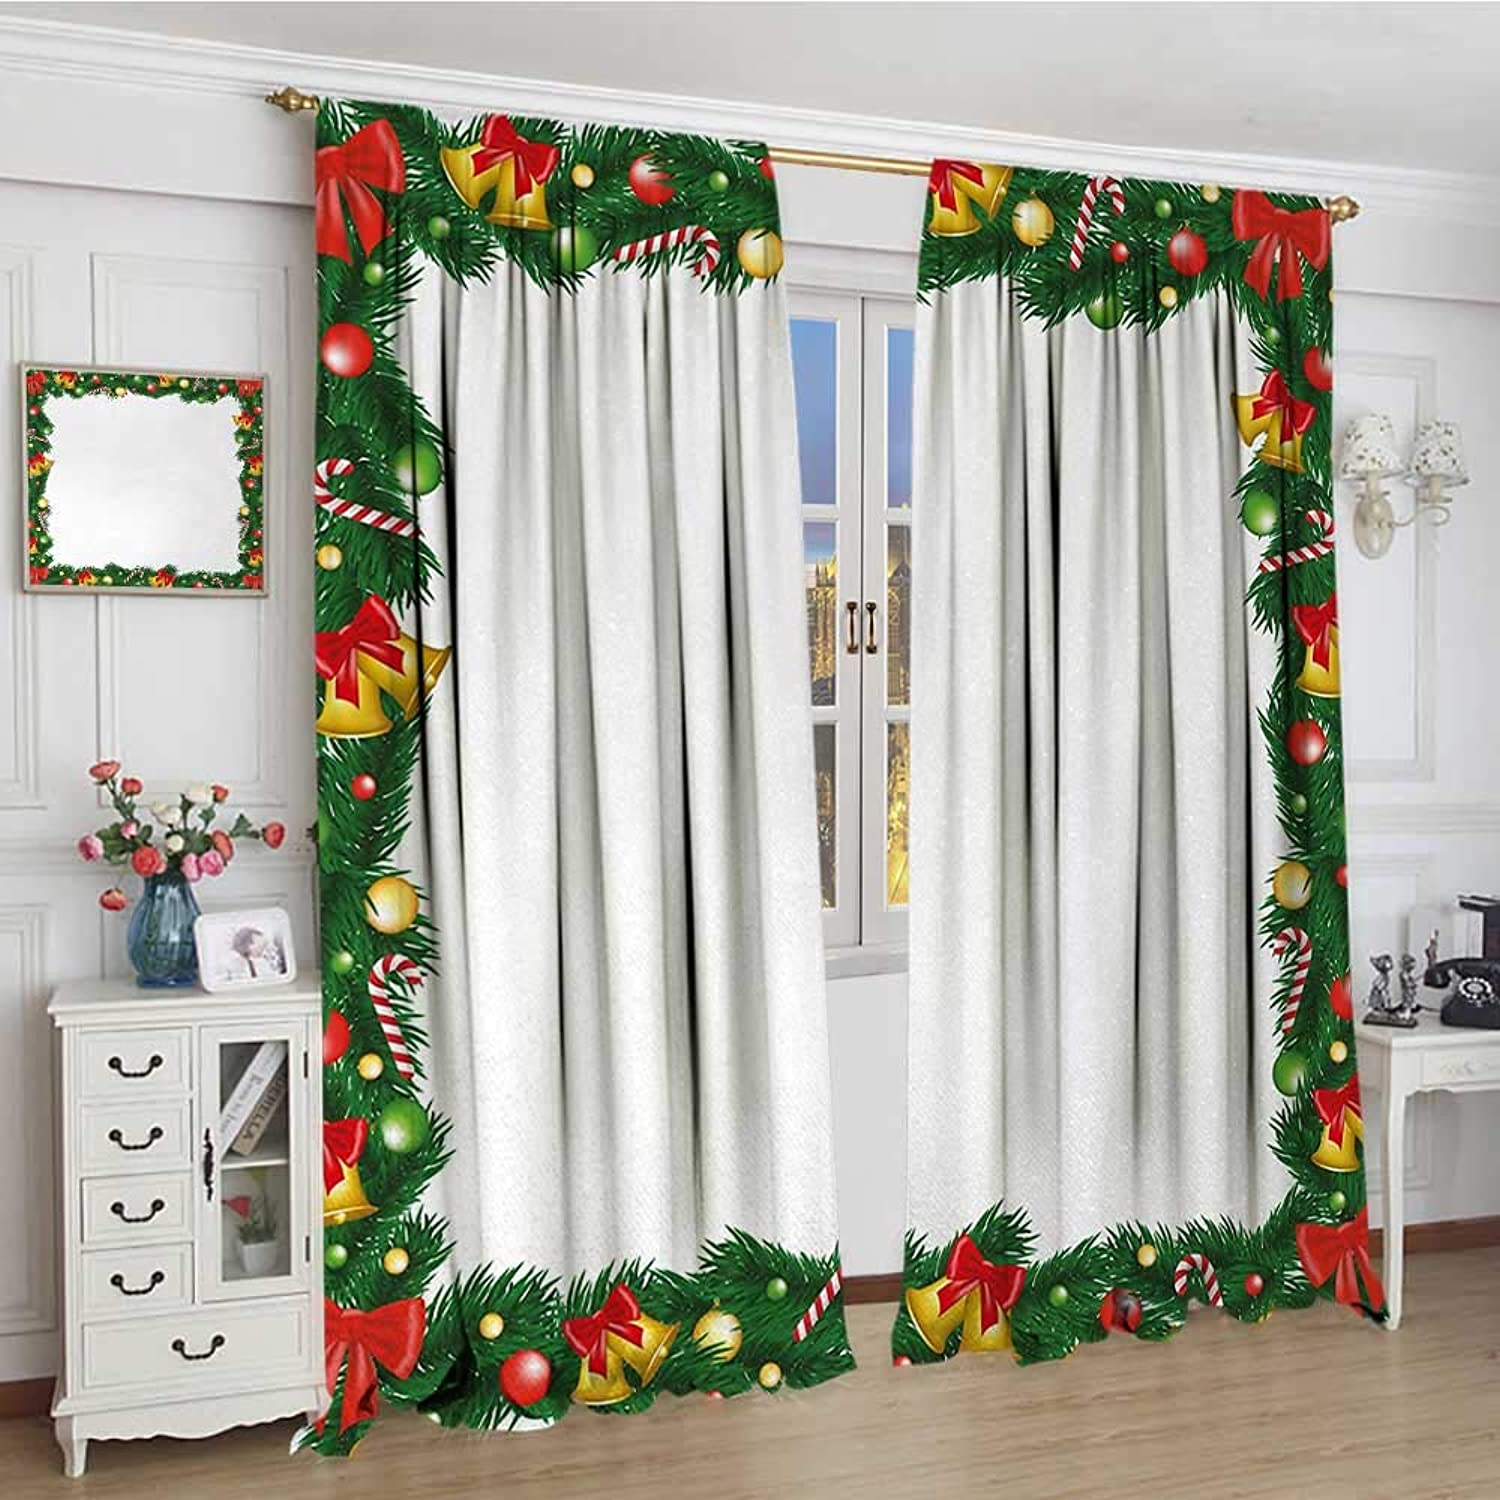 Smallbeefly New Year Thermal Insulating Blackout Curtain Xmas Themed Garland with Candy Canes Ribbons colorful Baubles and Bells Winter Decorative Curtains for Living Room 96 x96  Multicolor